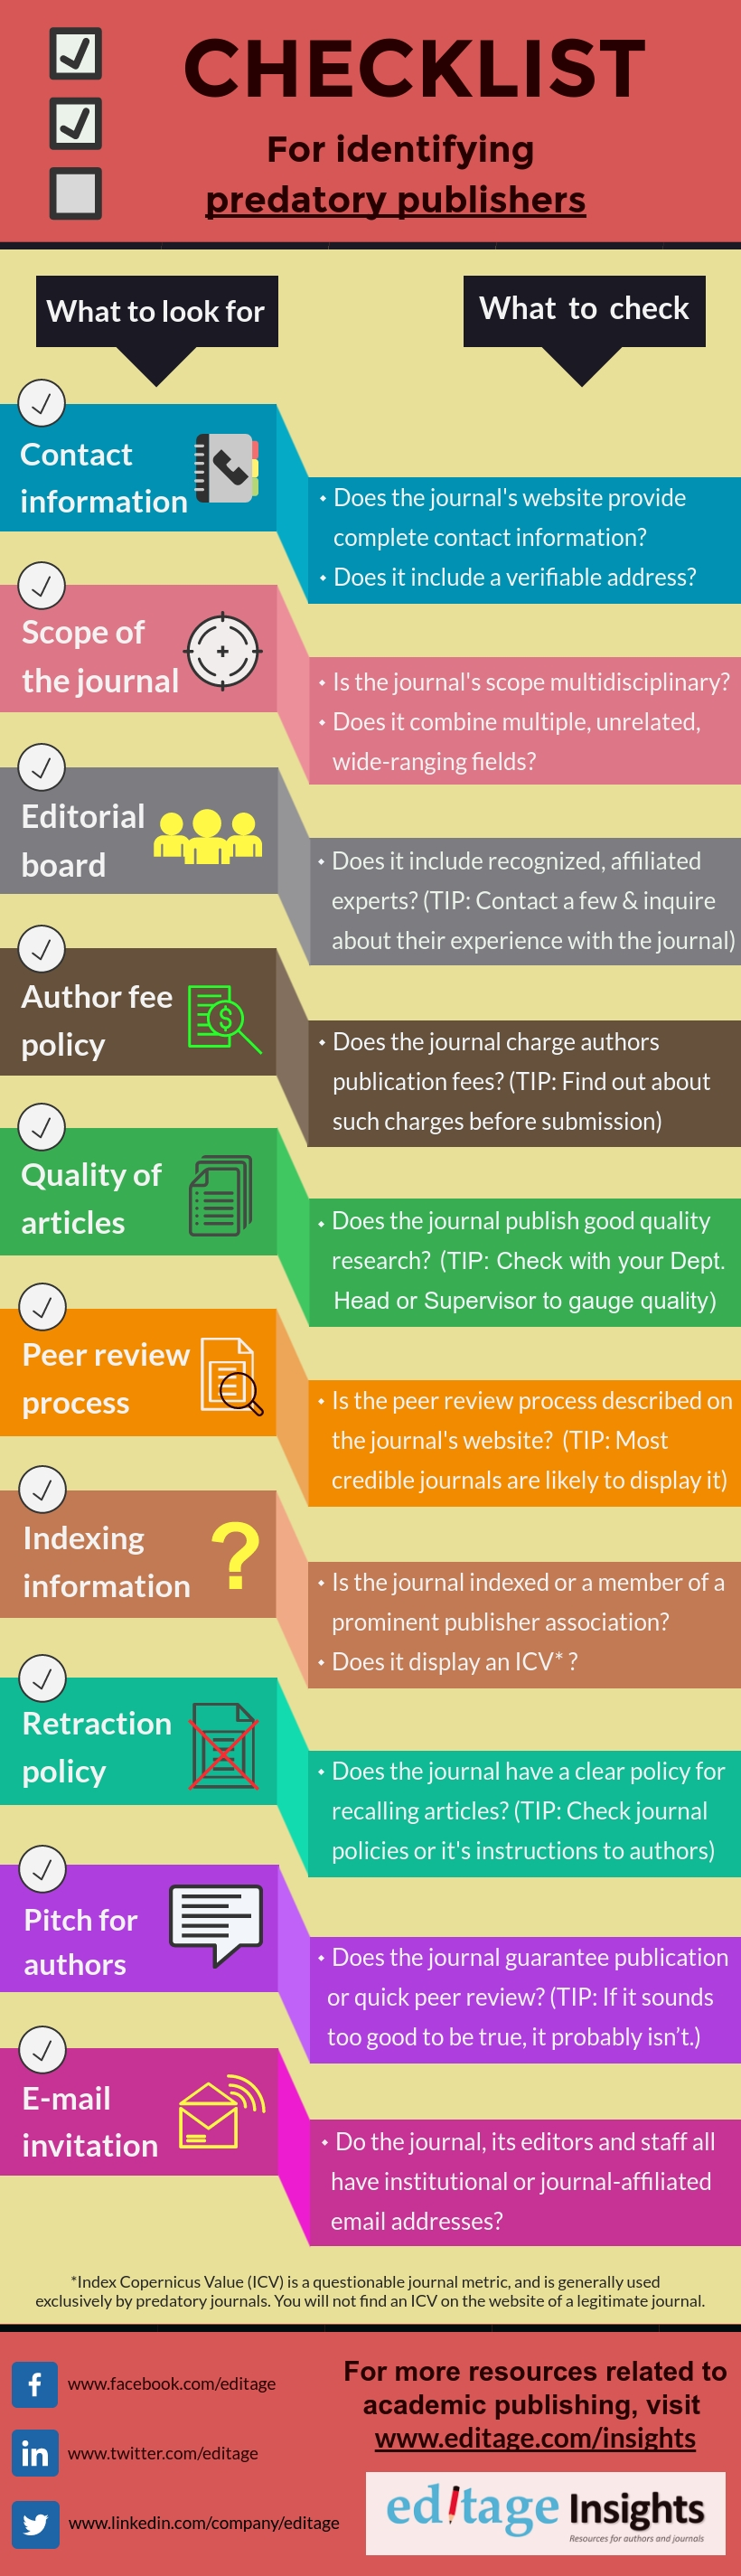 A checklist for identifying predatory publishers